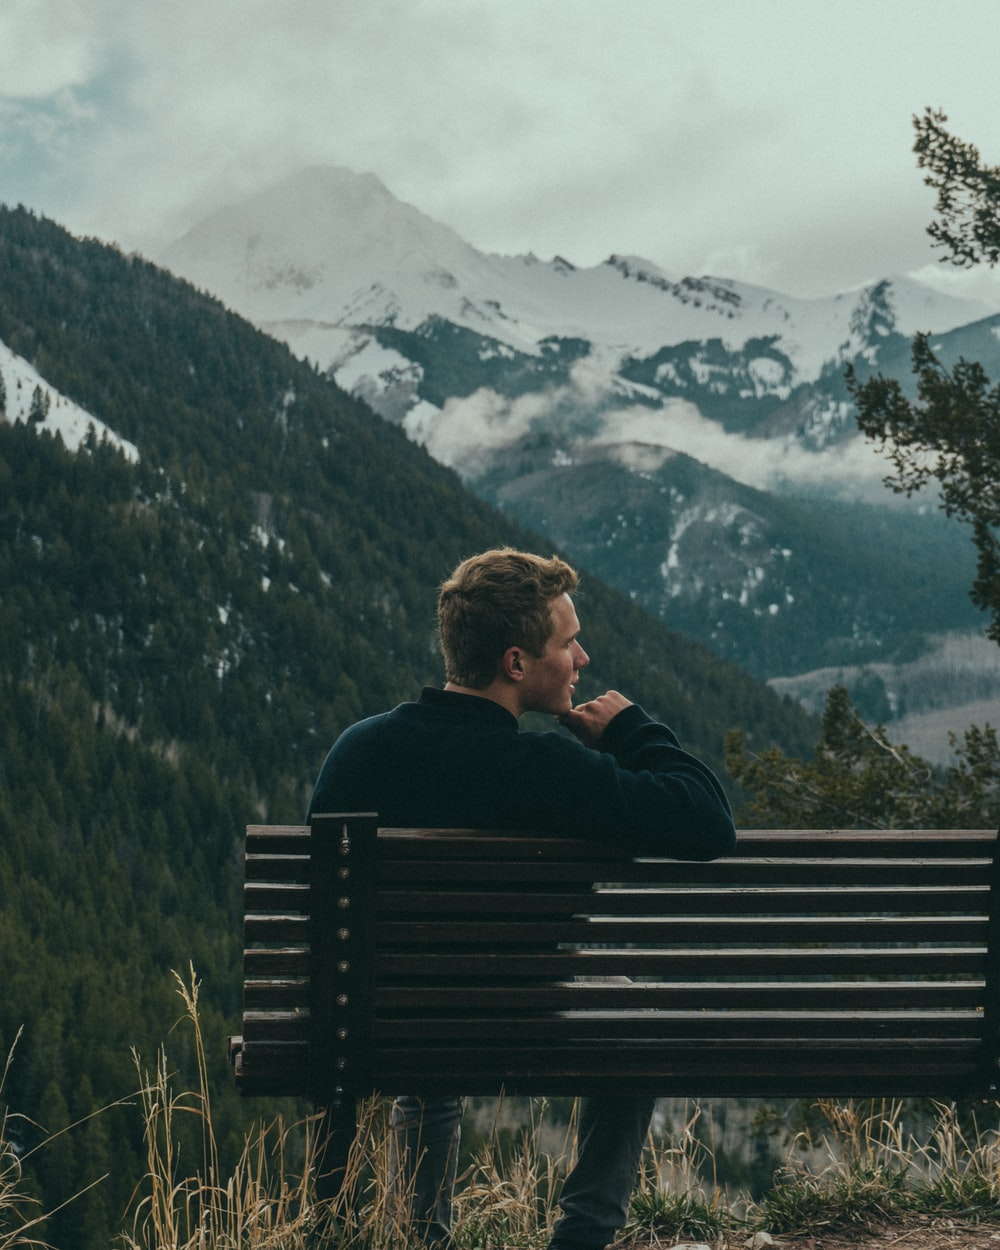 man sitting on bench on top of the mountain